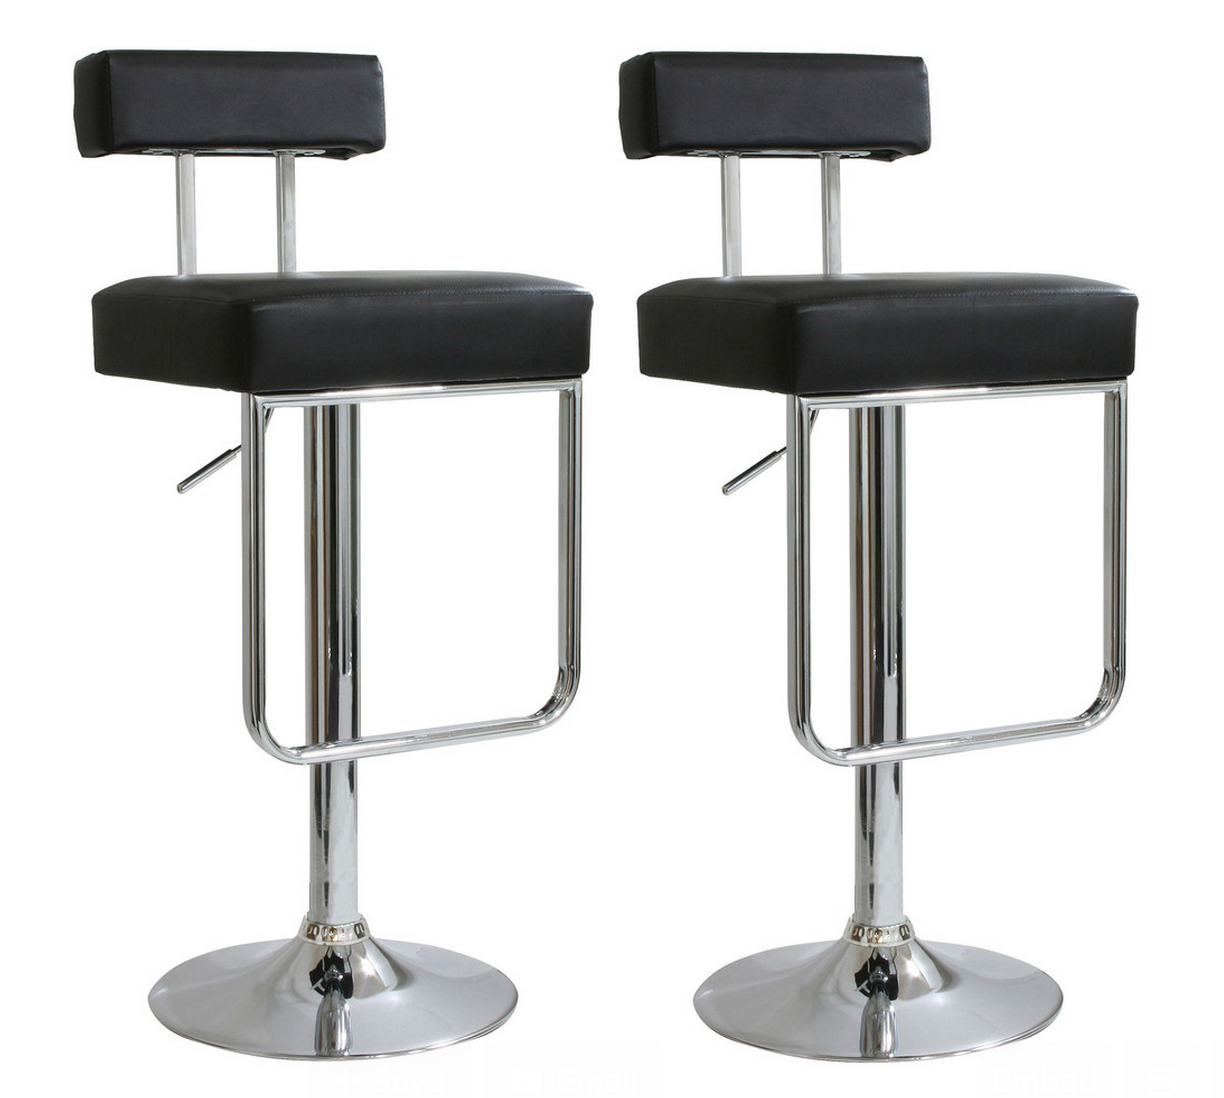 Kitchen island - AmeriHome 2 Piece Contemporary Padded Bar Stool Set - Beyond Stores